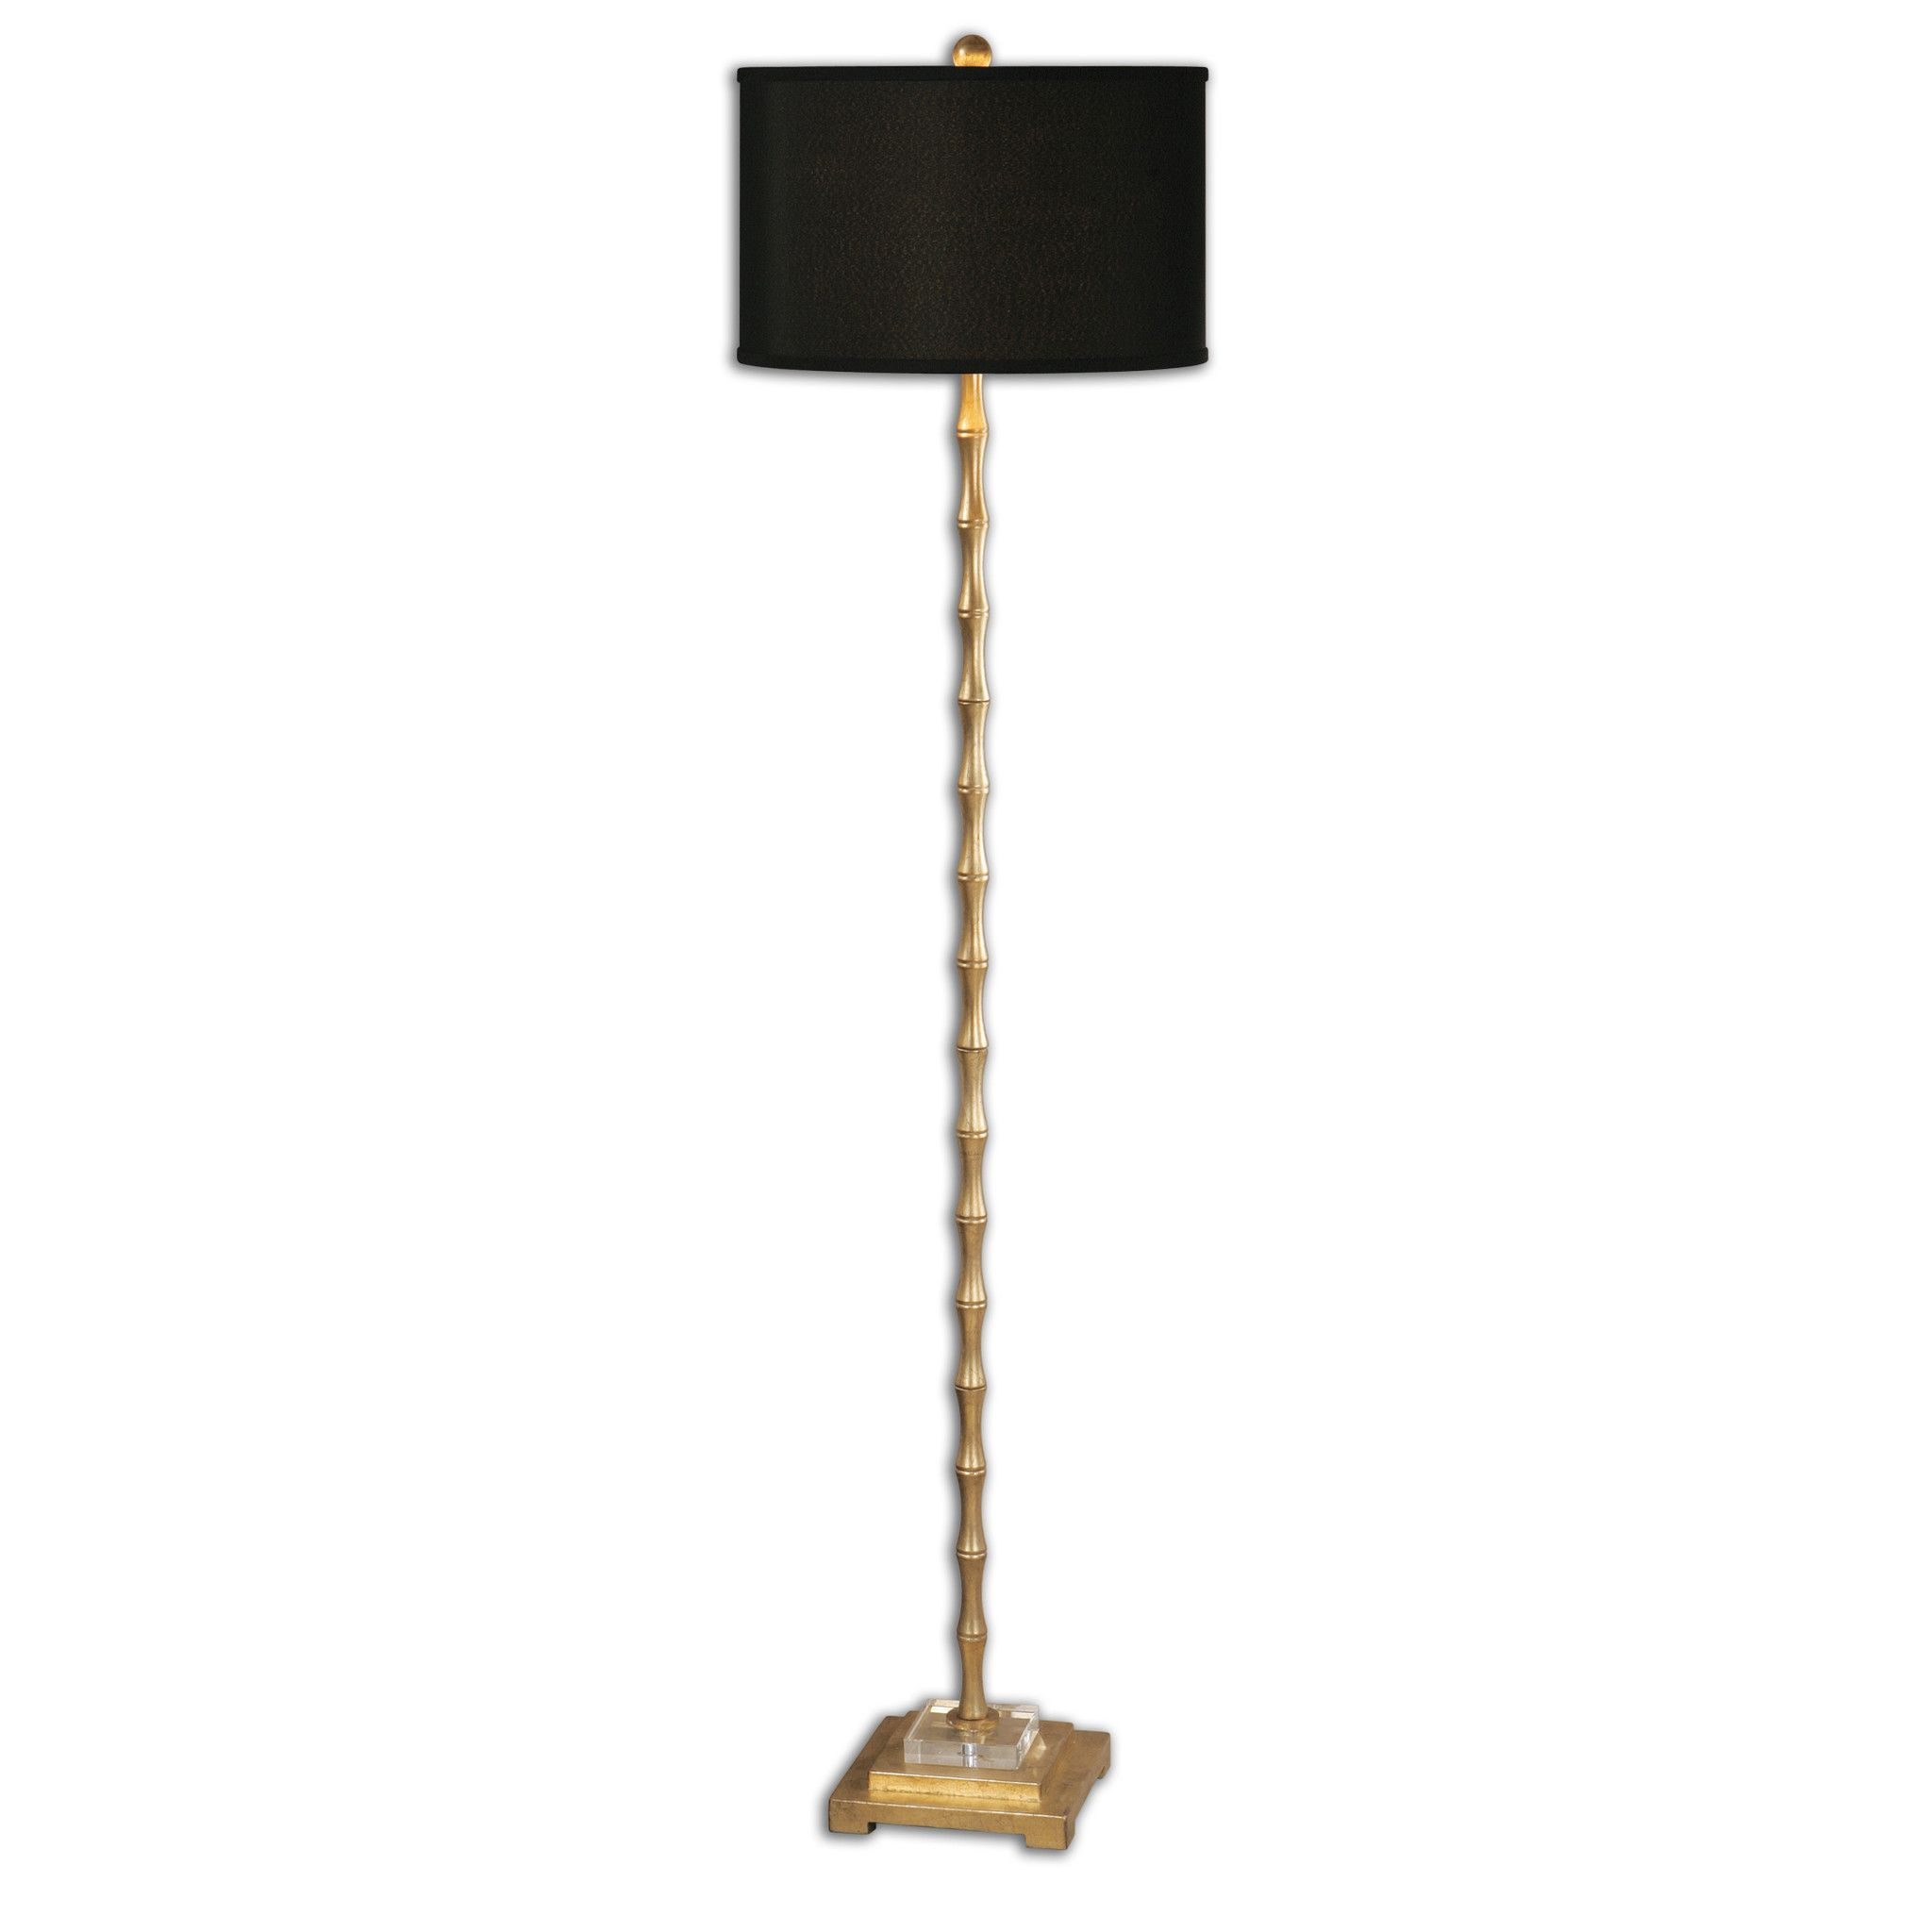 Bamboo Floor Lamp - Antique Gold